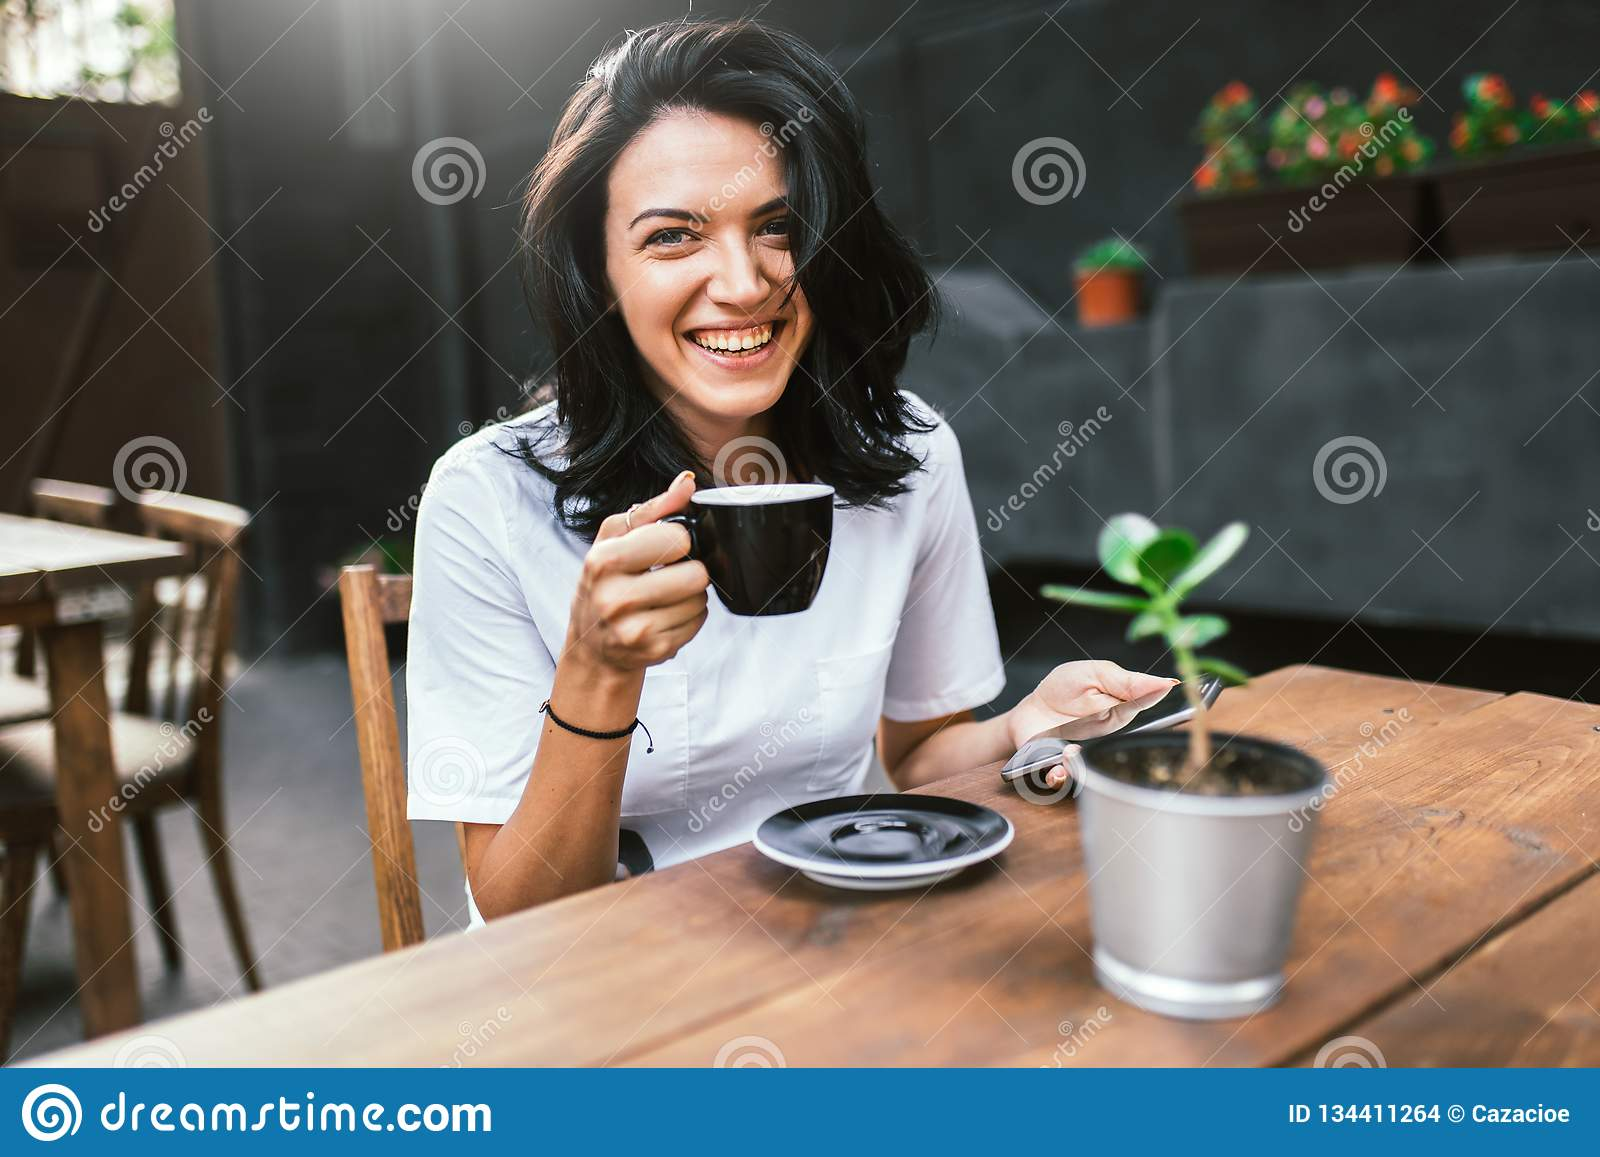 Attractive Caucasian female with pleasant cheerful smile sitting at terrace cafe, drinking coffee and enjoying online